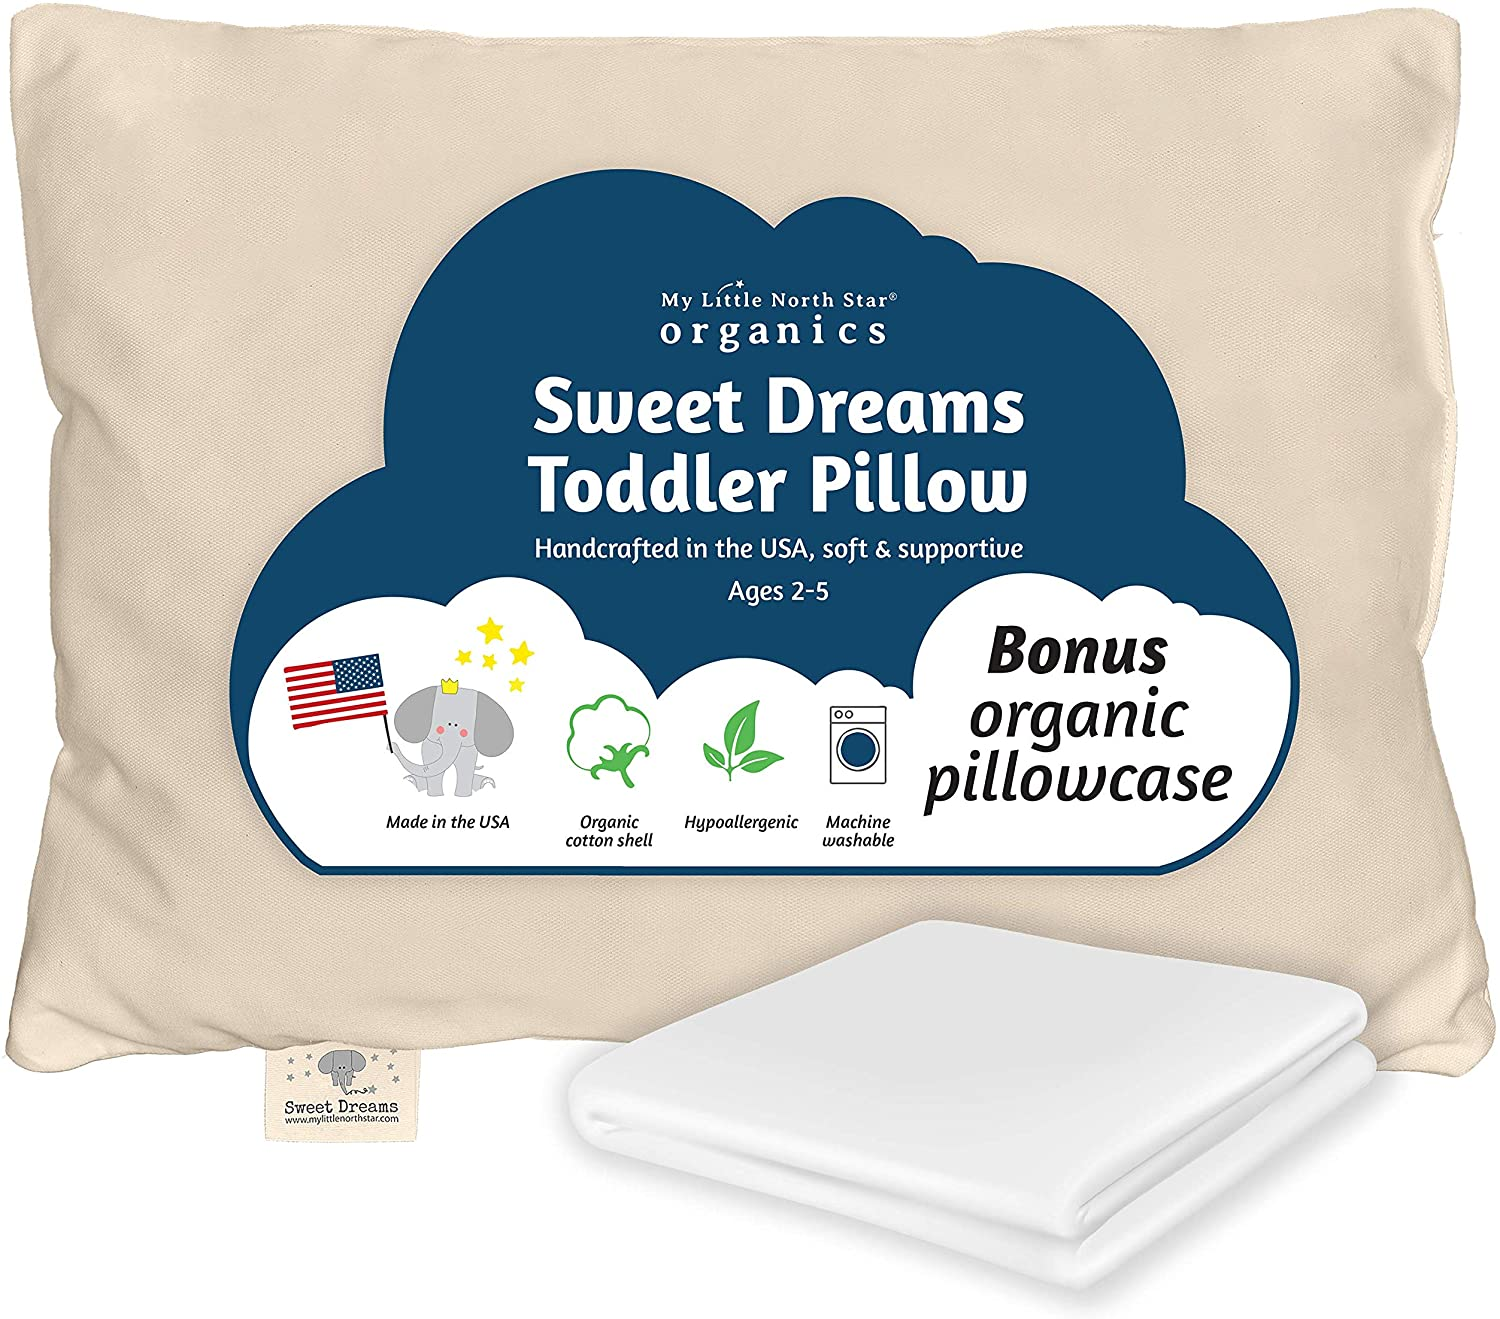 Sweet Dreams Toddler Pillow by My Little North Star